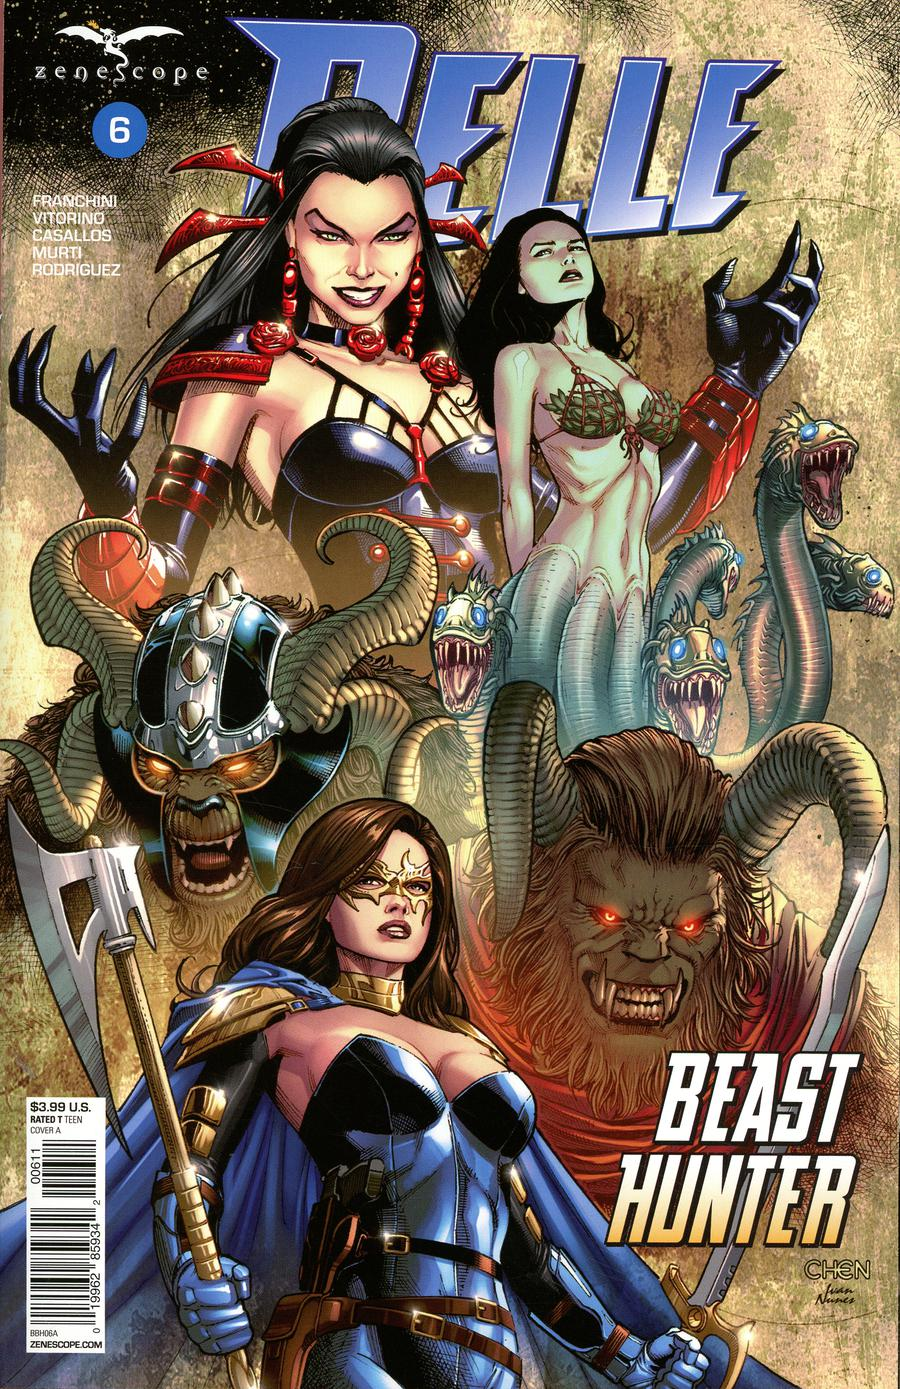 Grimm Fairy Tales Presents Belle Beast Hunter #6 Cover A Sean Chen